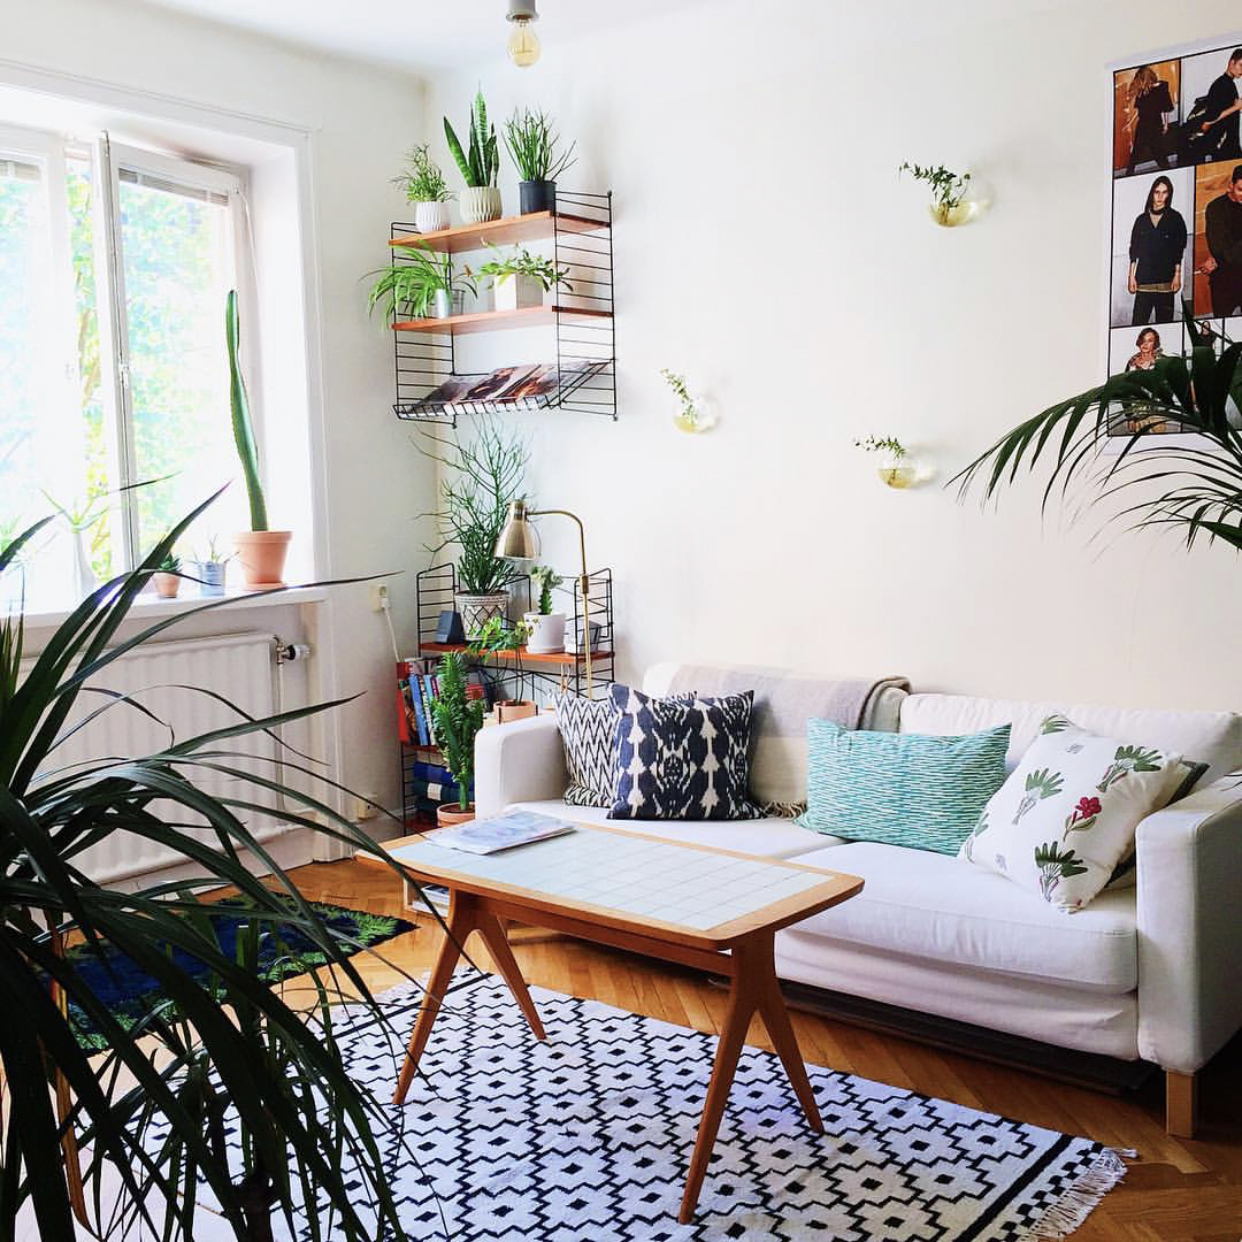 The 16 best airbnbs in stockholm sweden